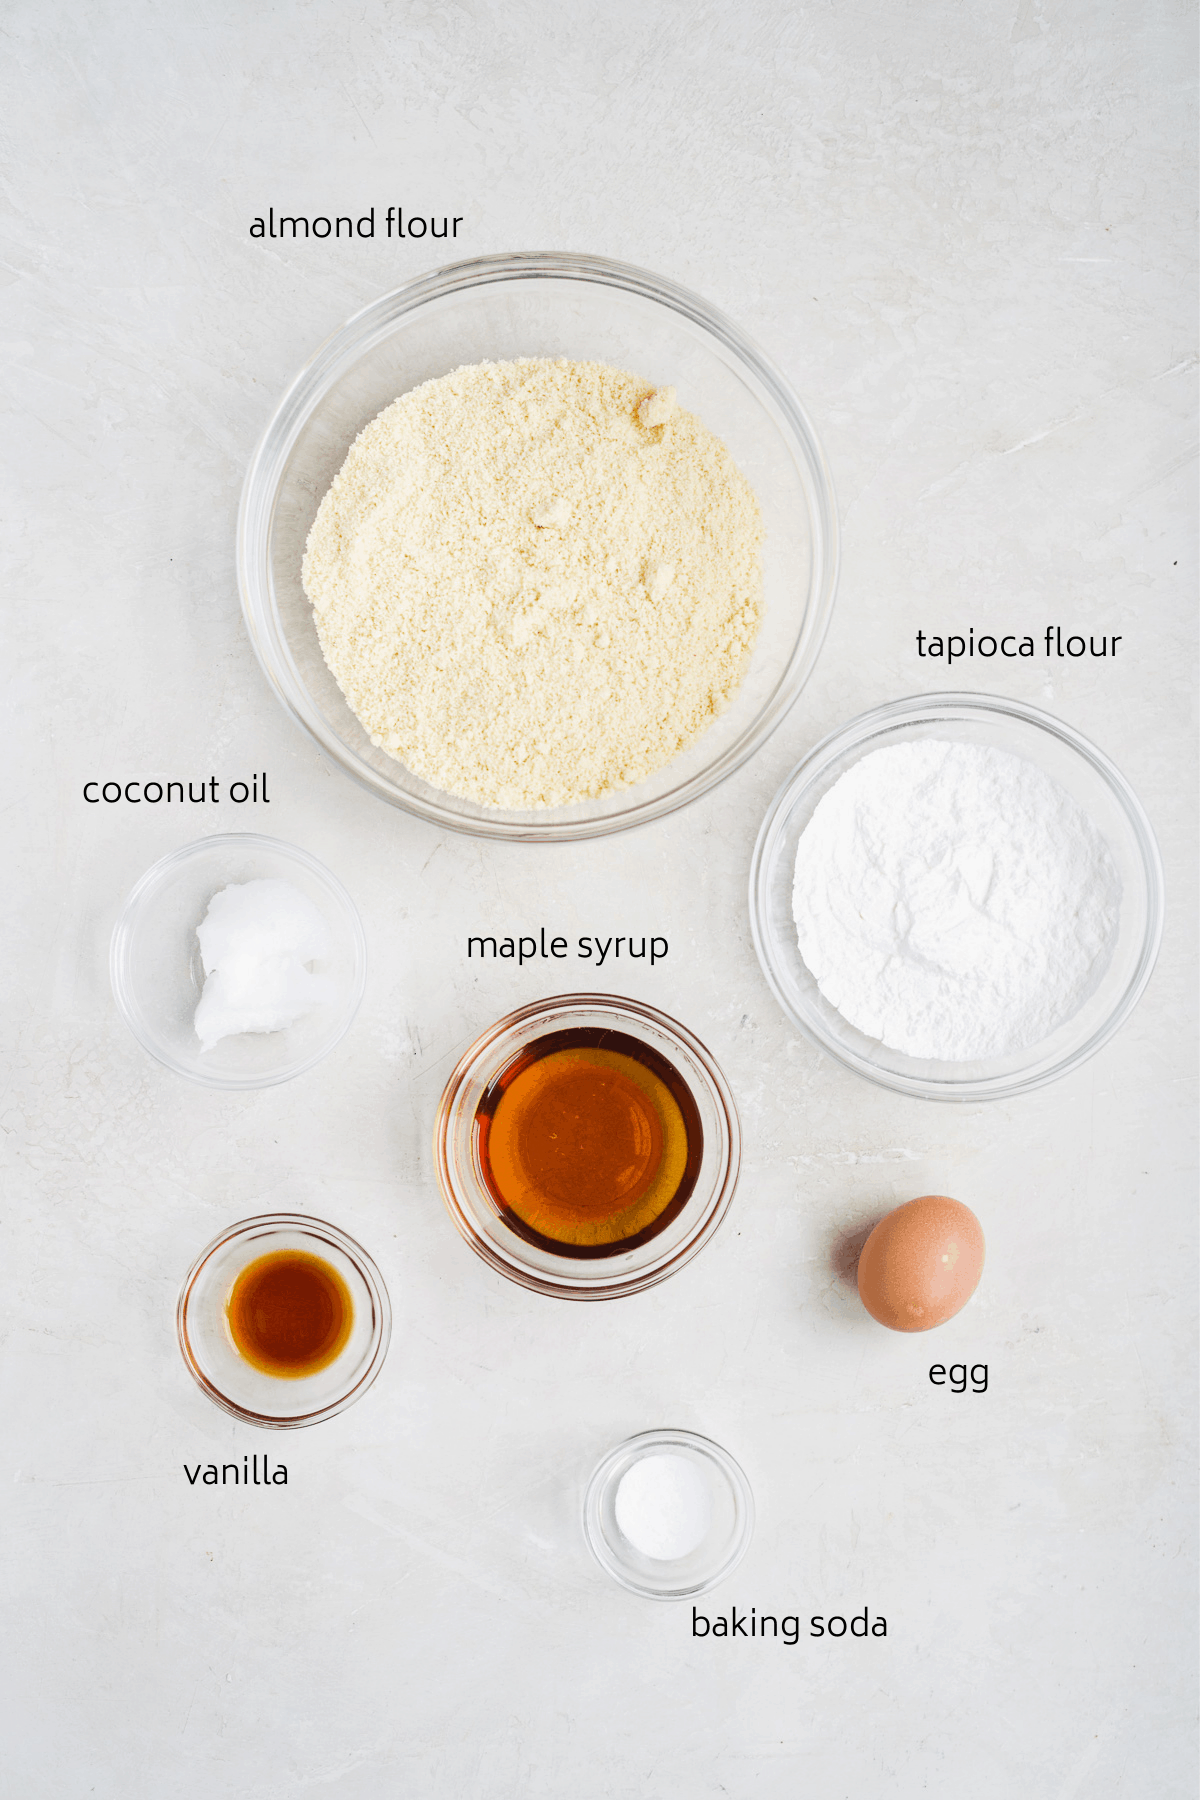 Image of ingredients laid out in glass bowls with labels.